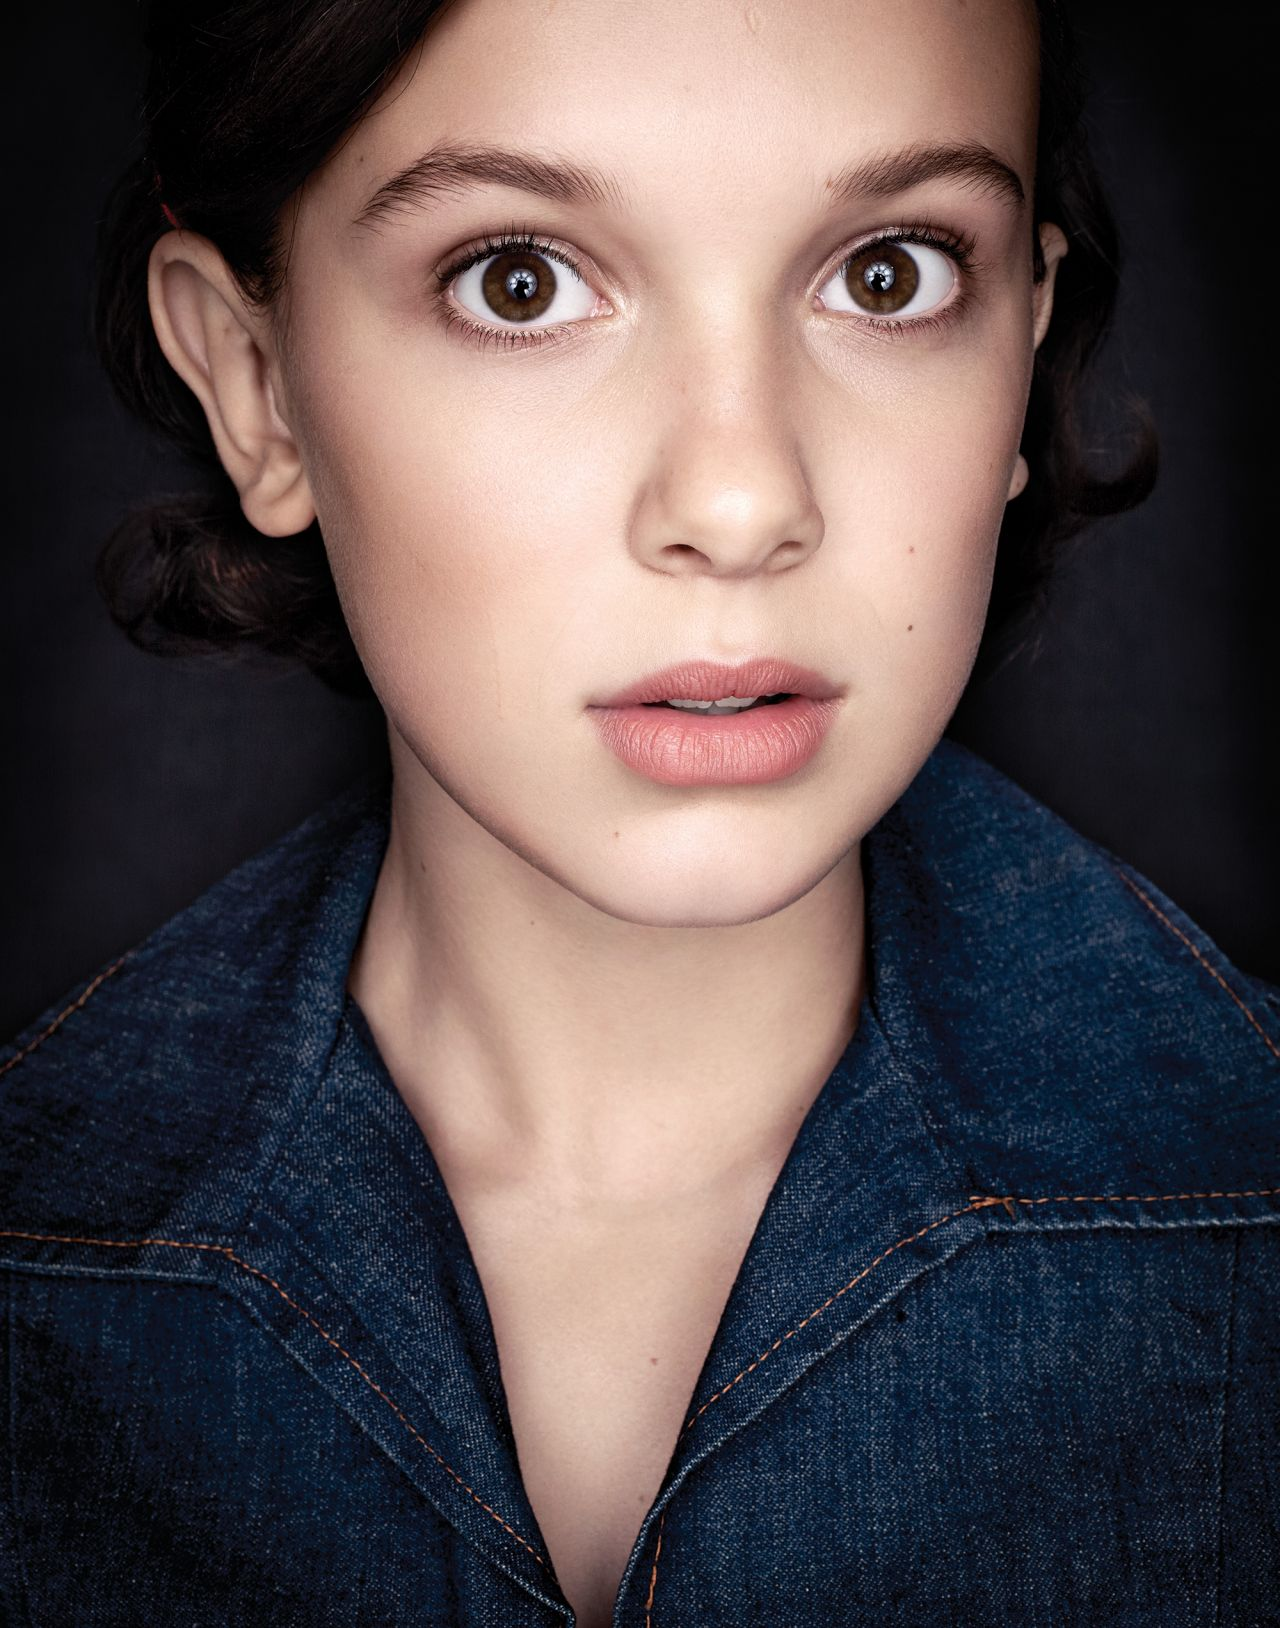 millie bobby brown - photo #9